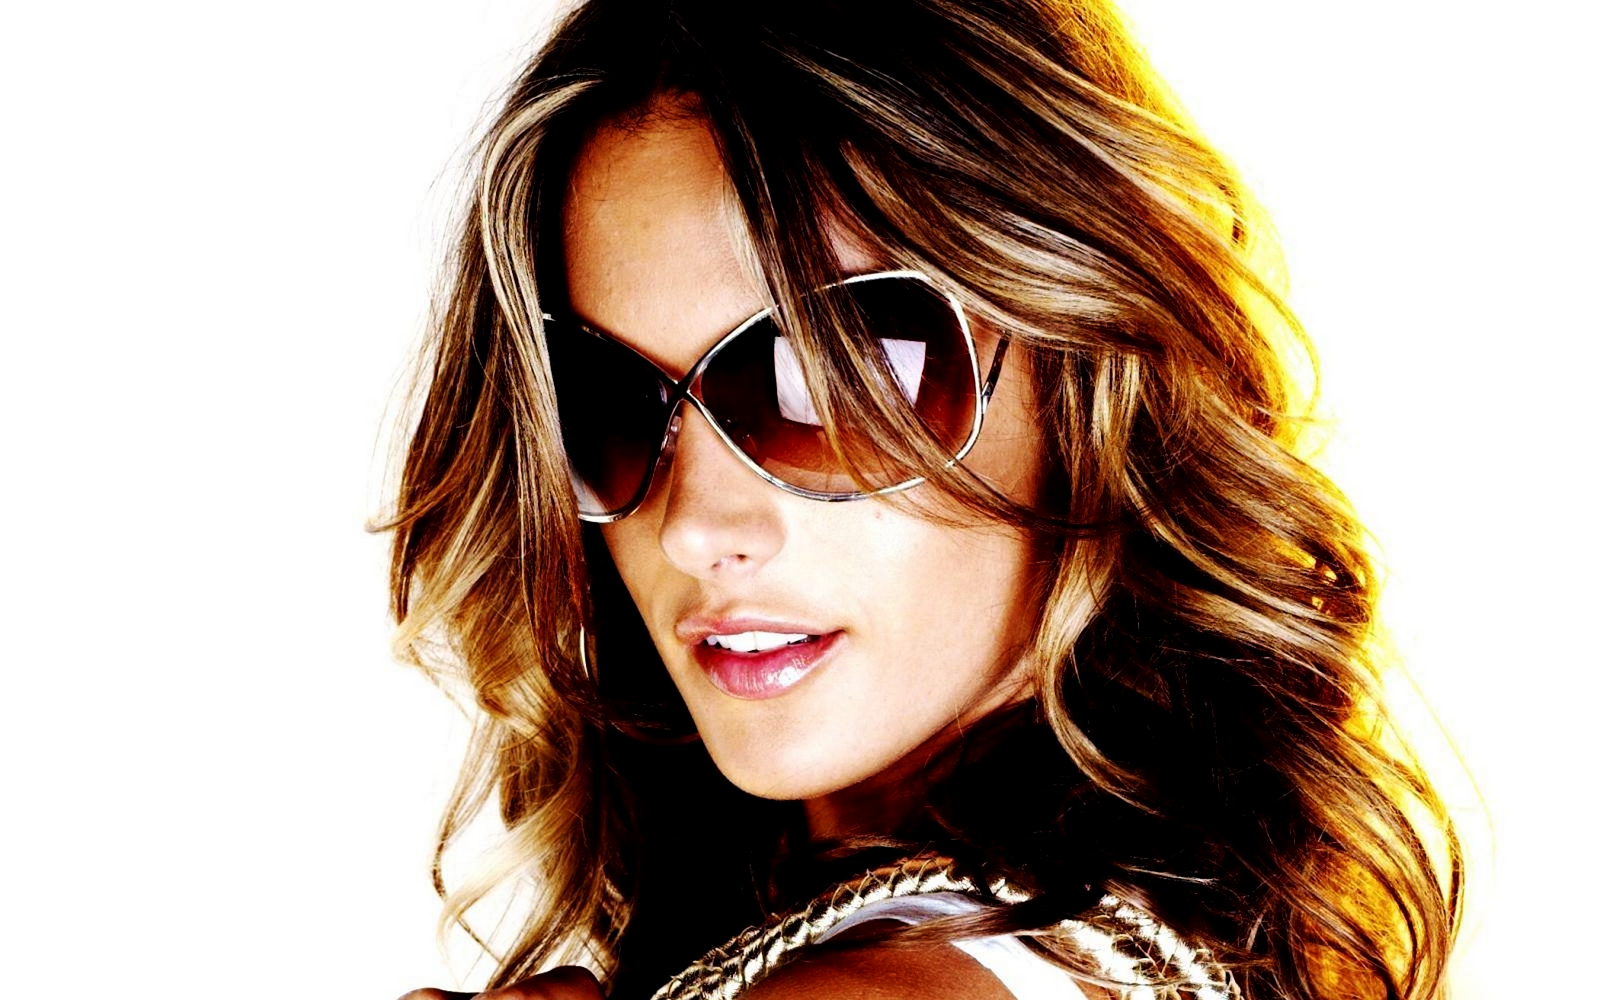 central wallpaper  celebrities in sunglasses hd wallpapers